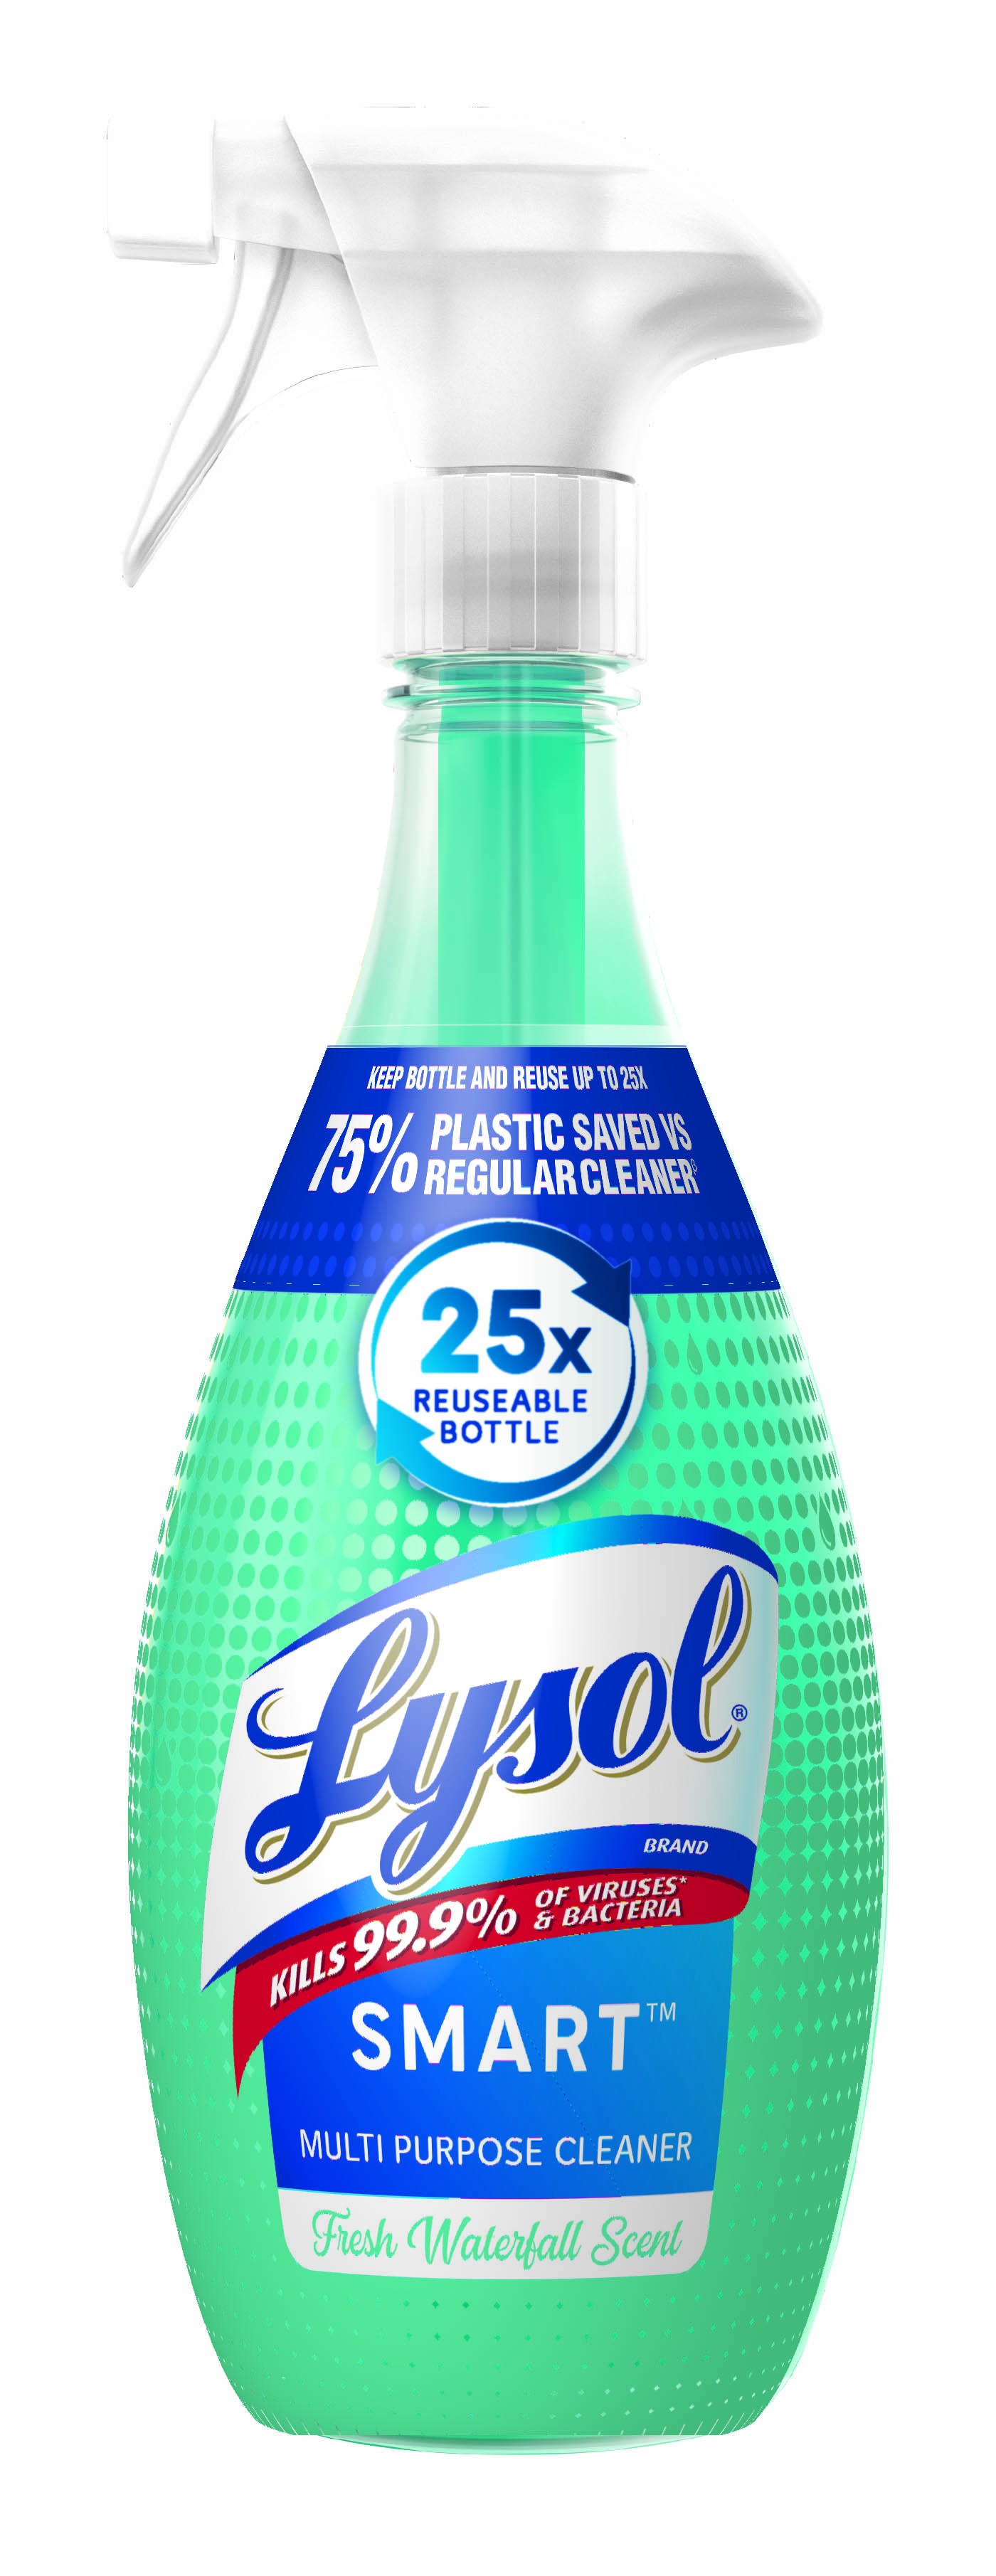 Lysol SMART Multi-Purpose Cleaner - 1+1 Fresh Waterfall Retail Starter Kit